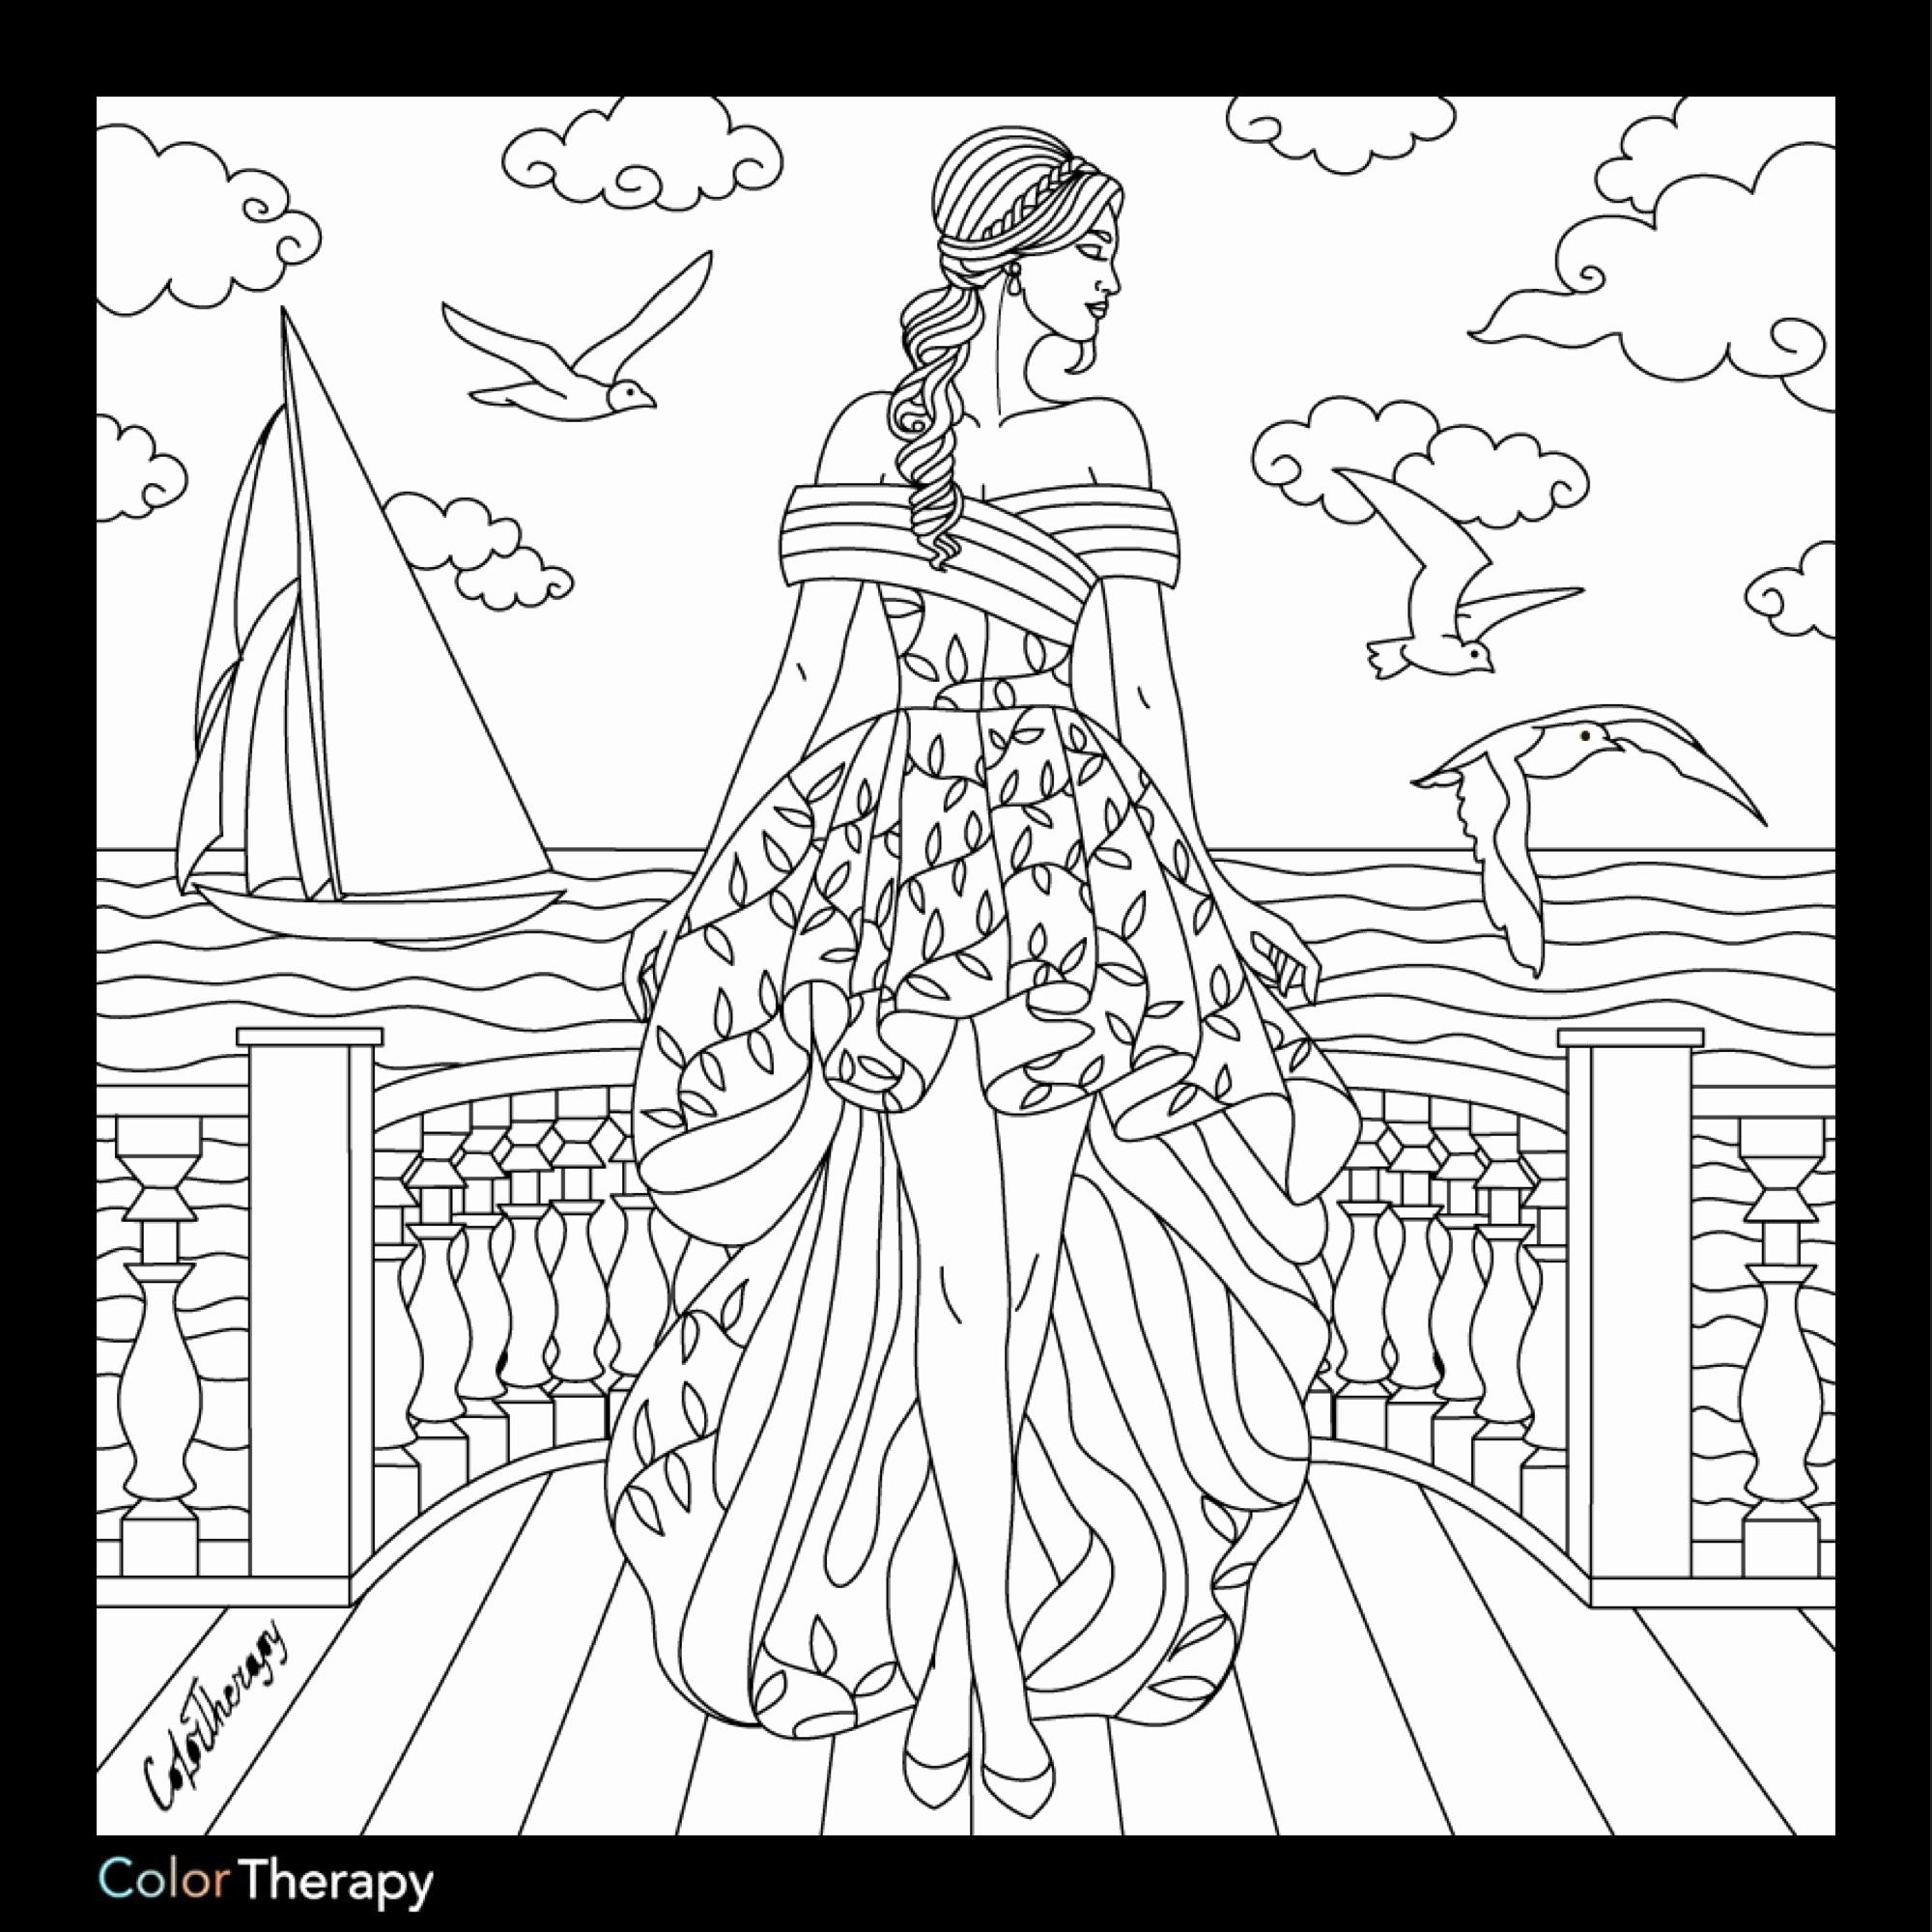 Coloring Book Fashion Girl New Color Therapy Coloring Pages Gambar Warna Sulaman